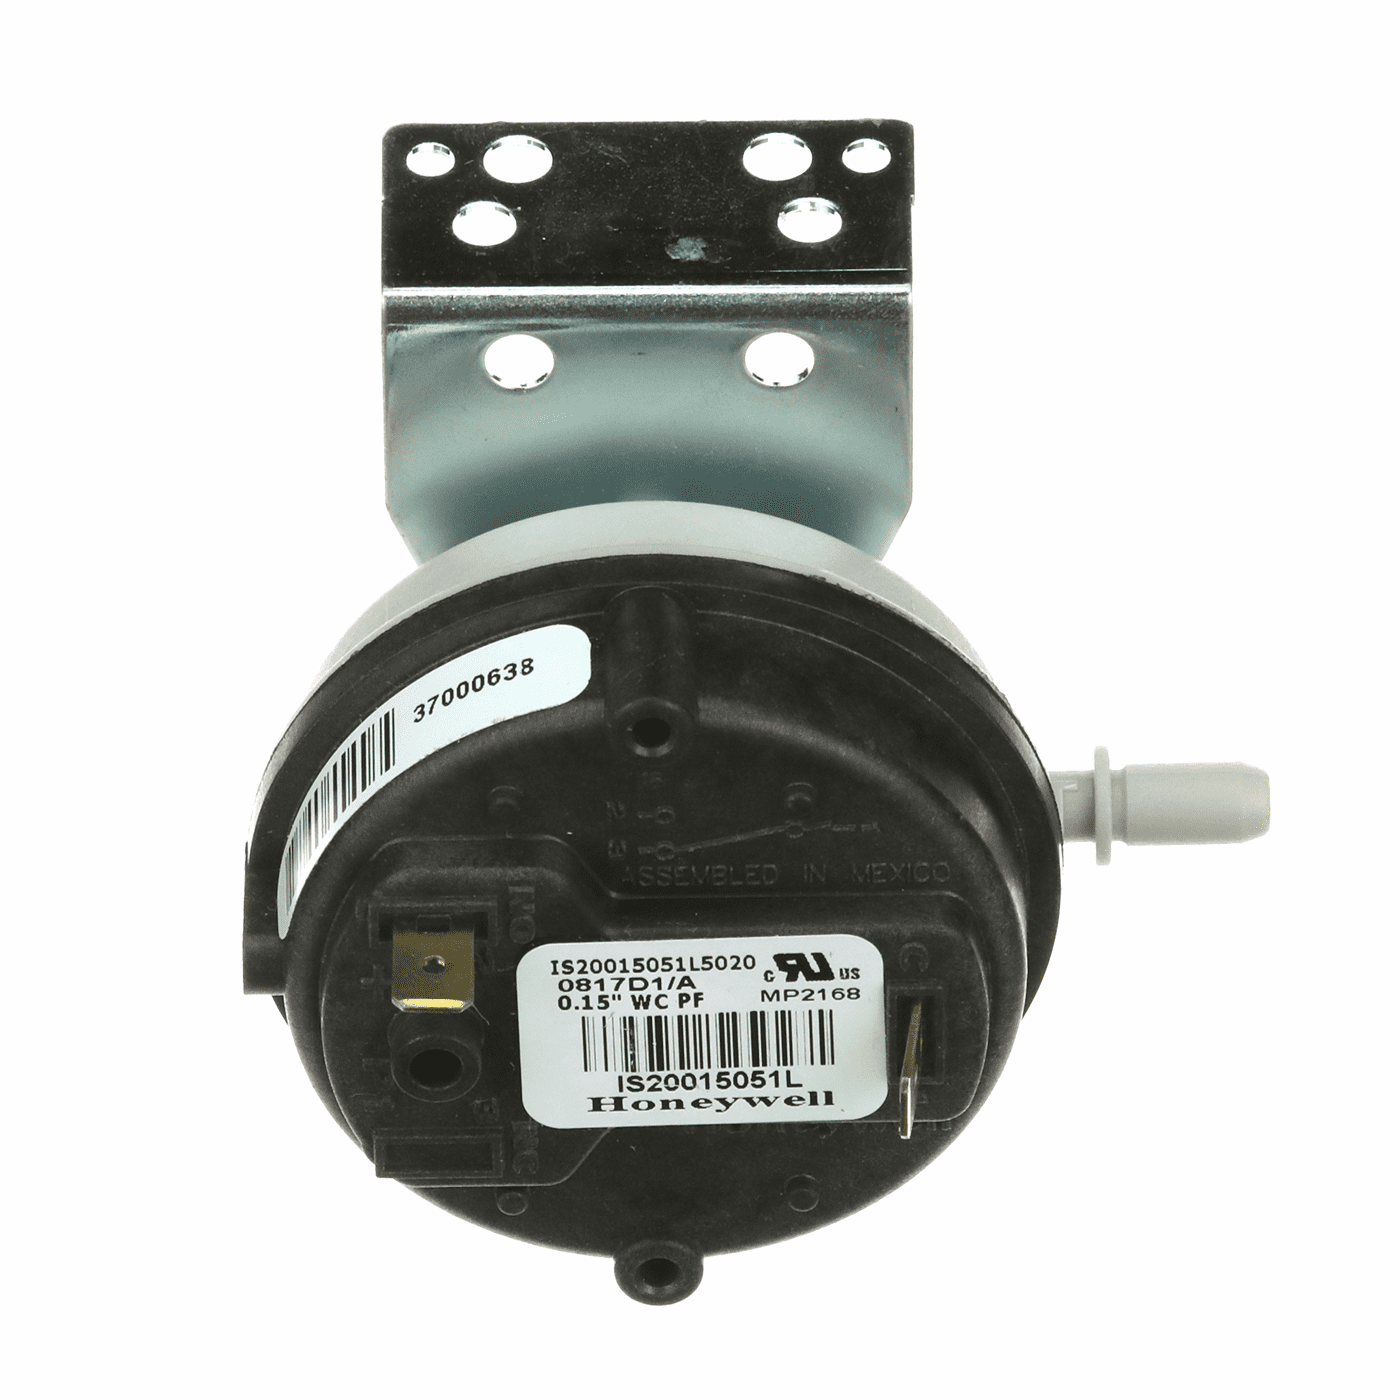 13640014 | Whitfield Pressure Switch Kit #13640014